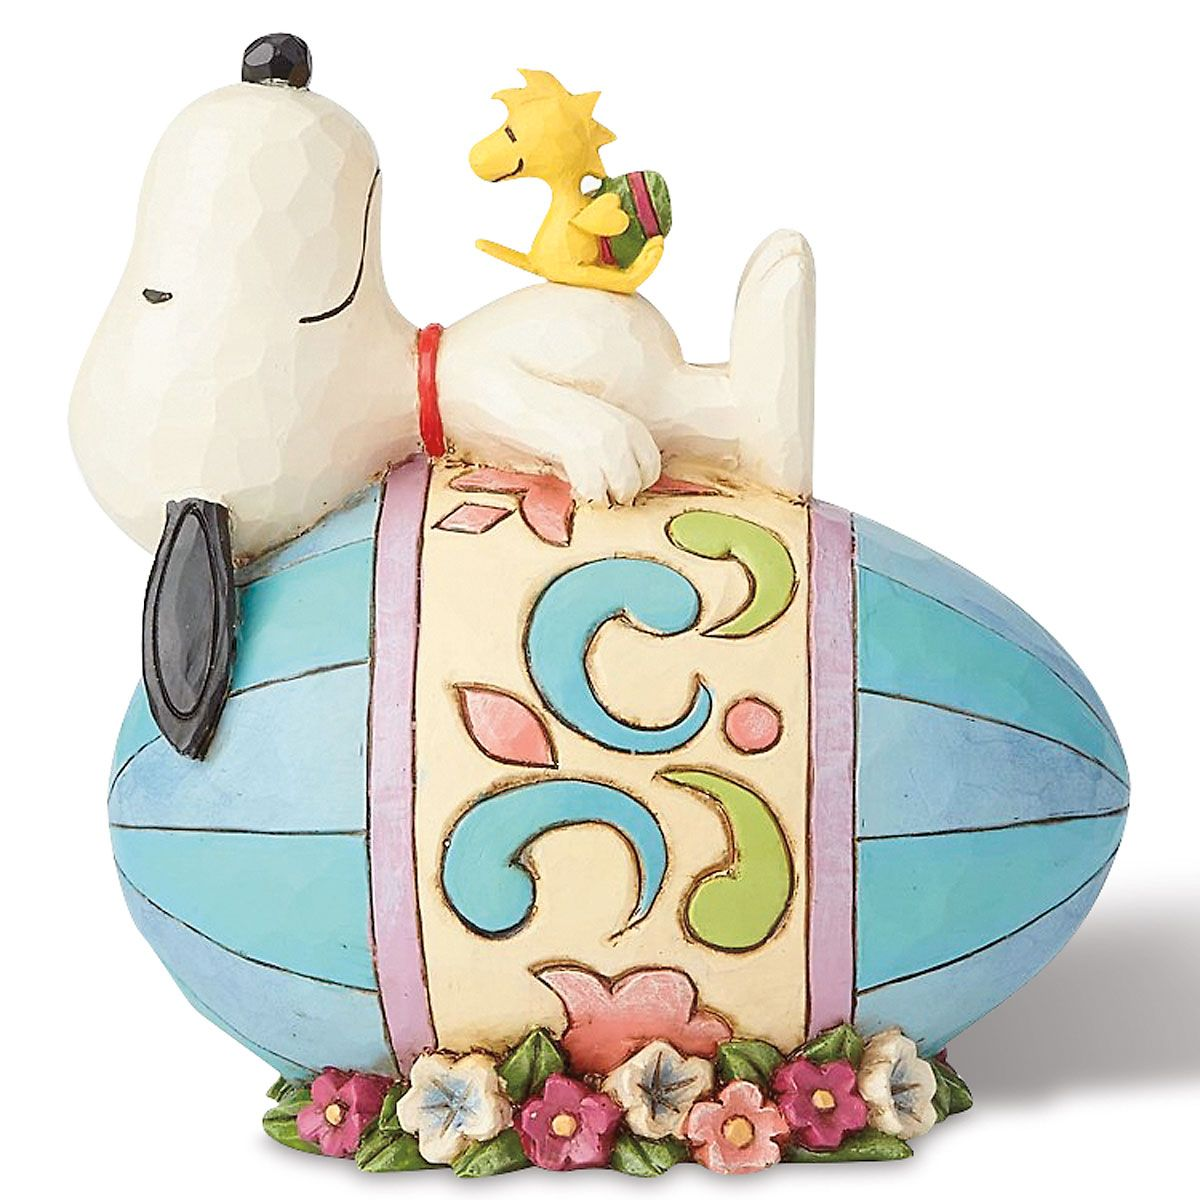 Snoopy™ on Easter Egg by Jim Shore